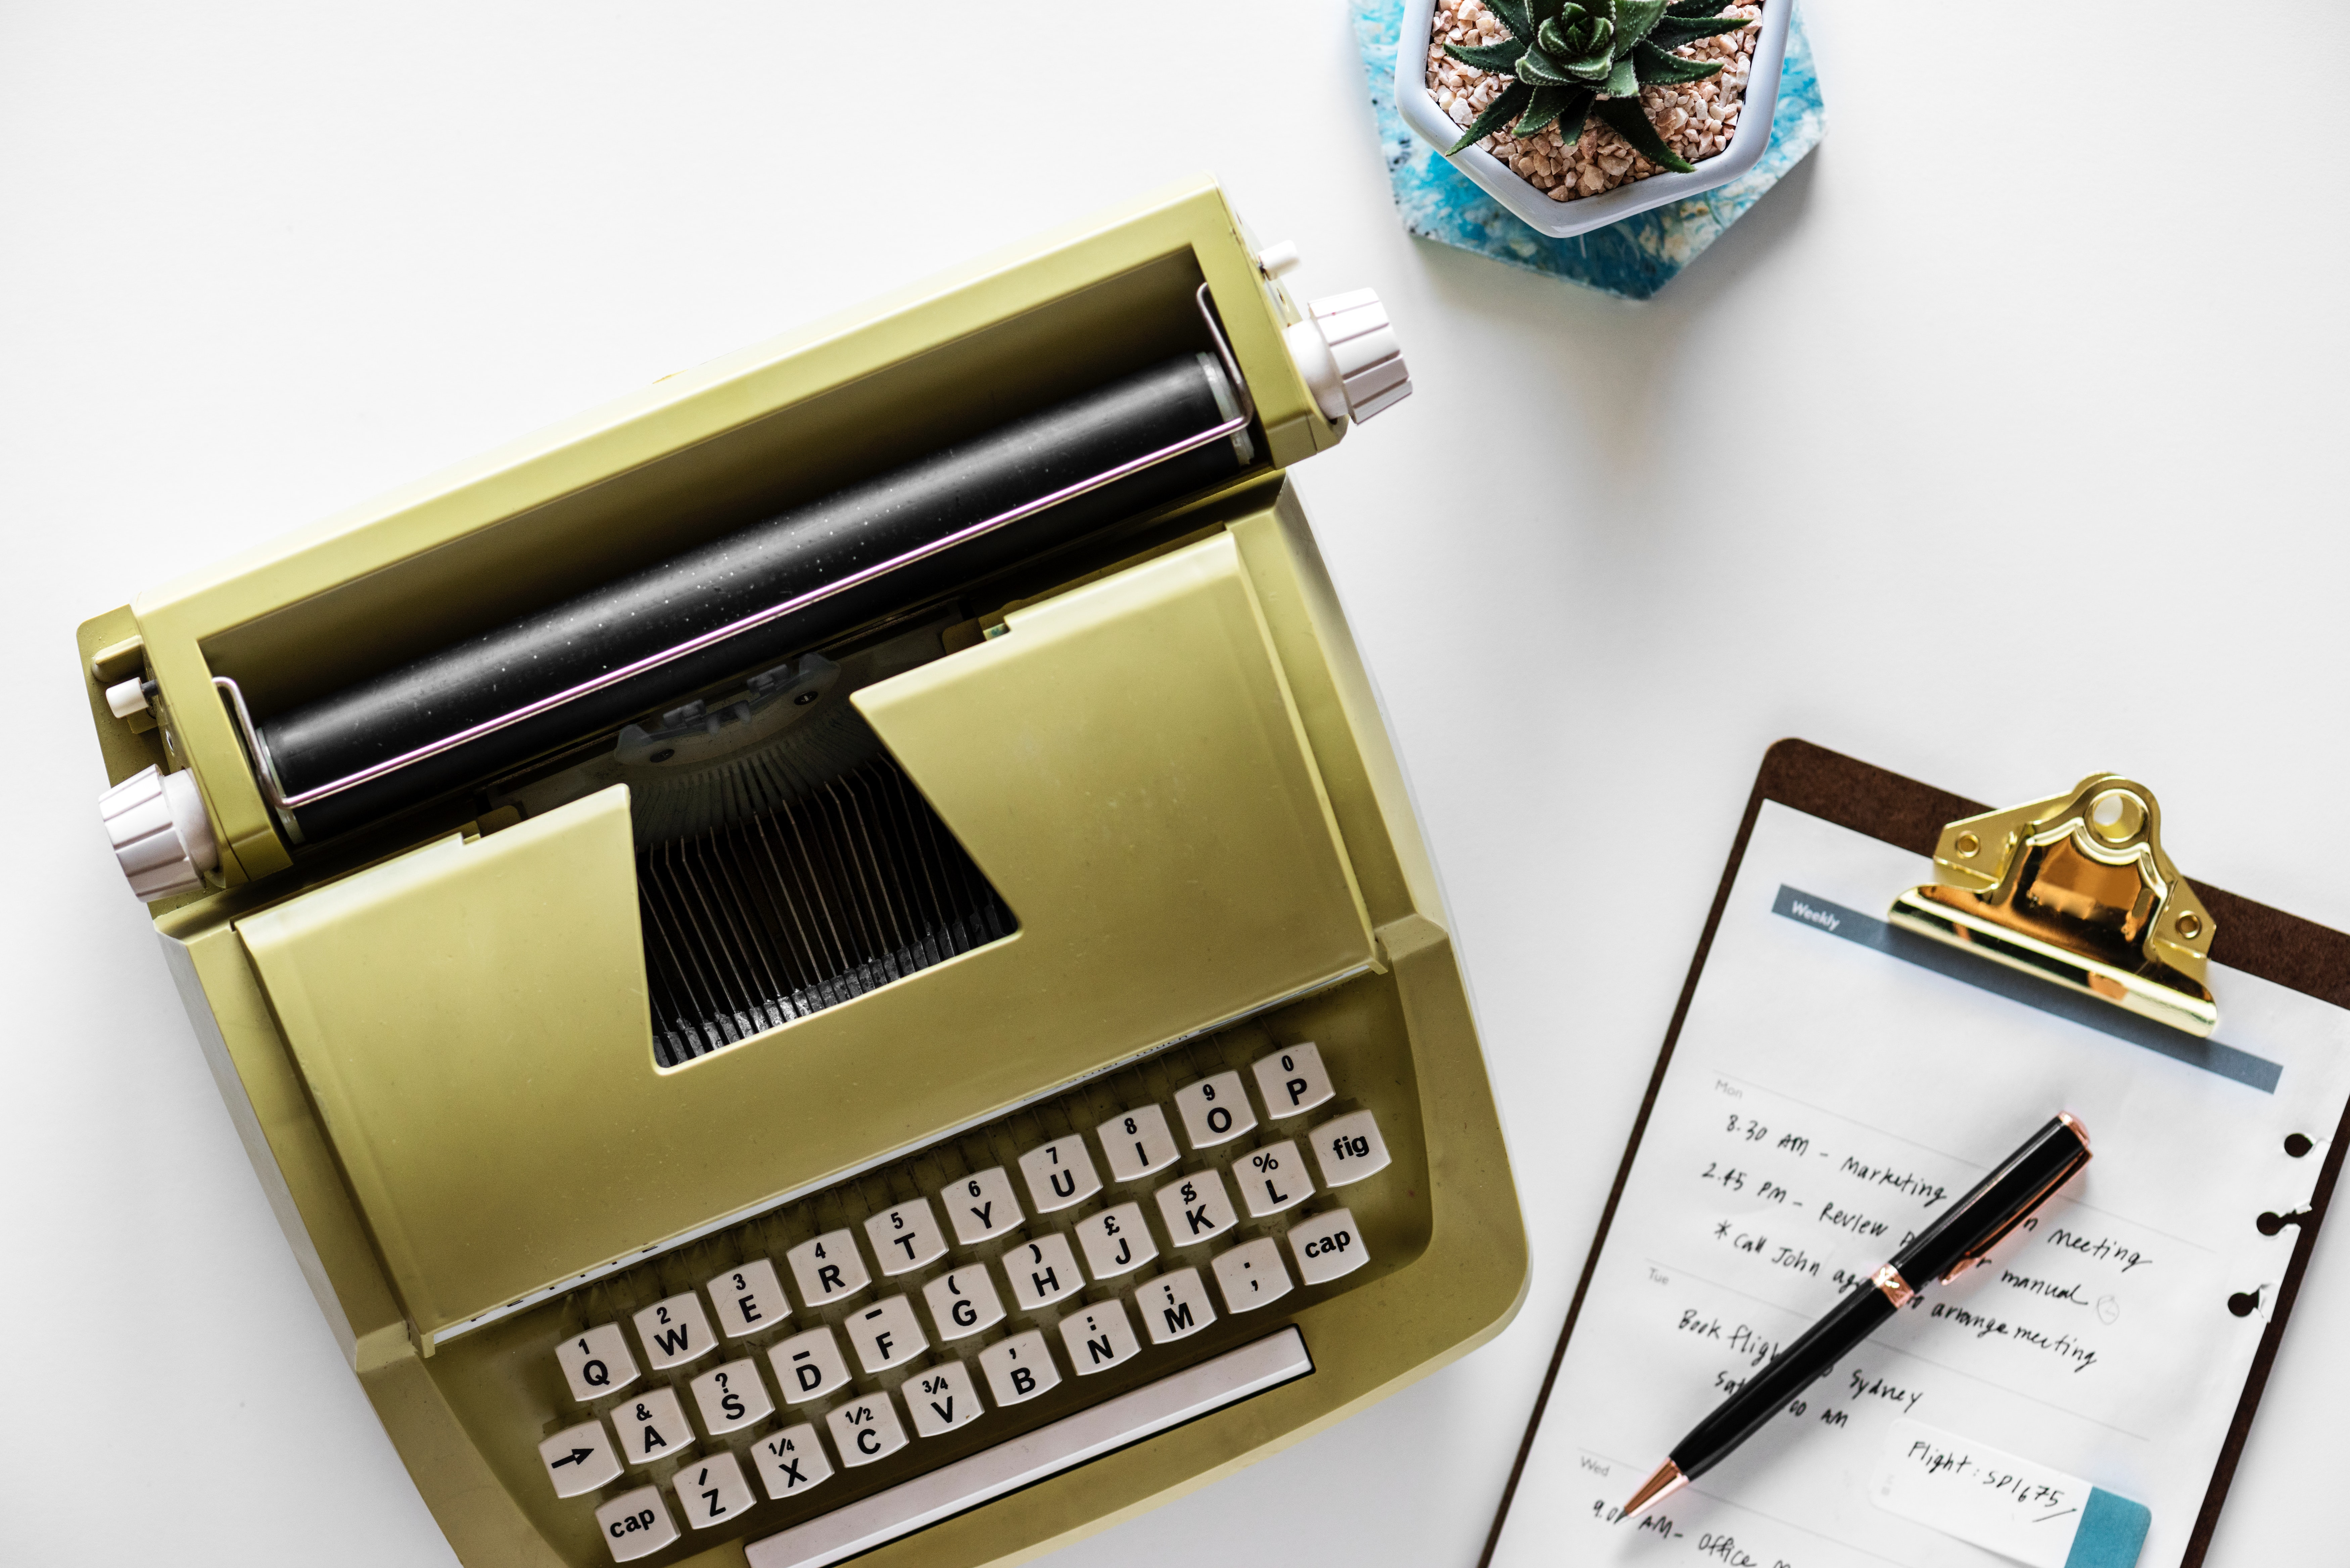 Gold Type Writer Beside Clip Board and Click Pen, Close -up, Desk, Equipment, Keyboard, HQ Photo